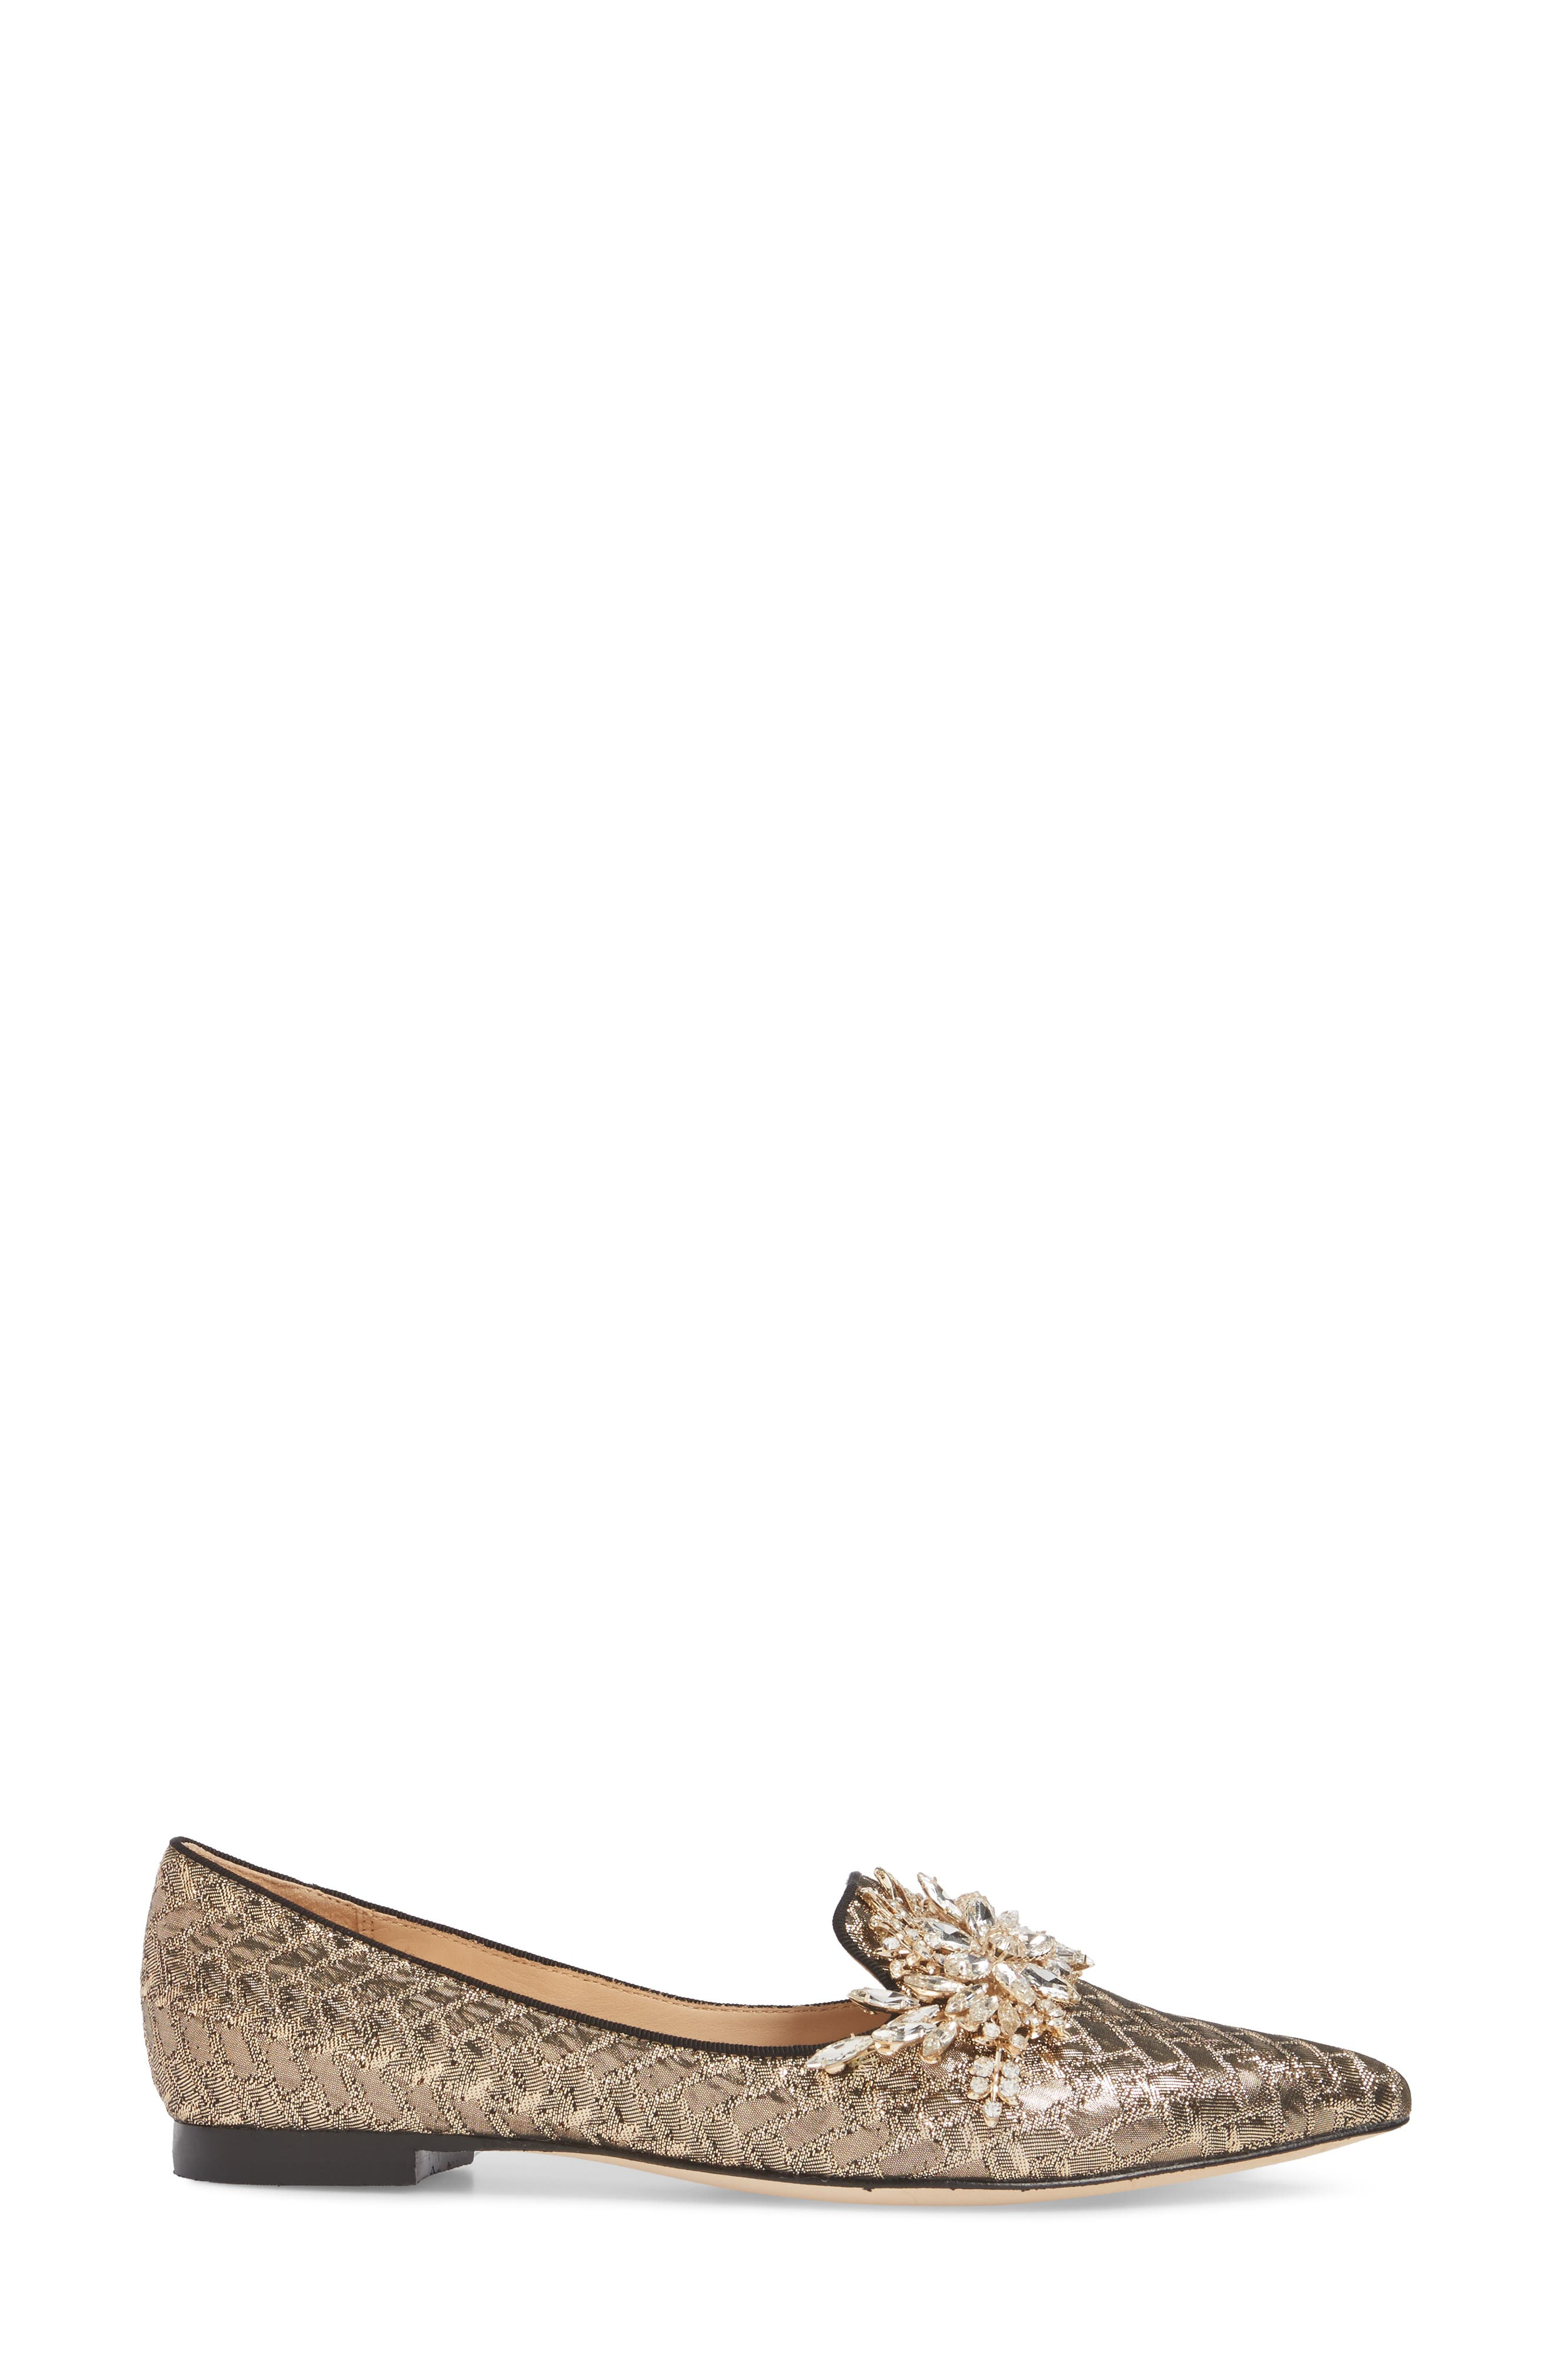 Mandy Embellished Loafer Flat,                             Alternate thumbnail 3, color,                             Antique Gold